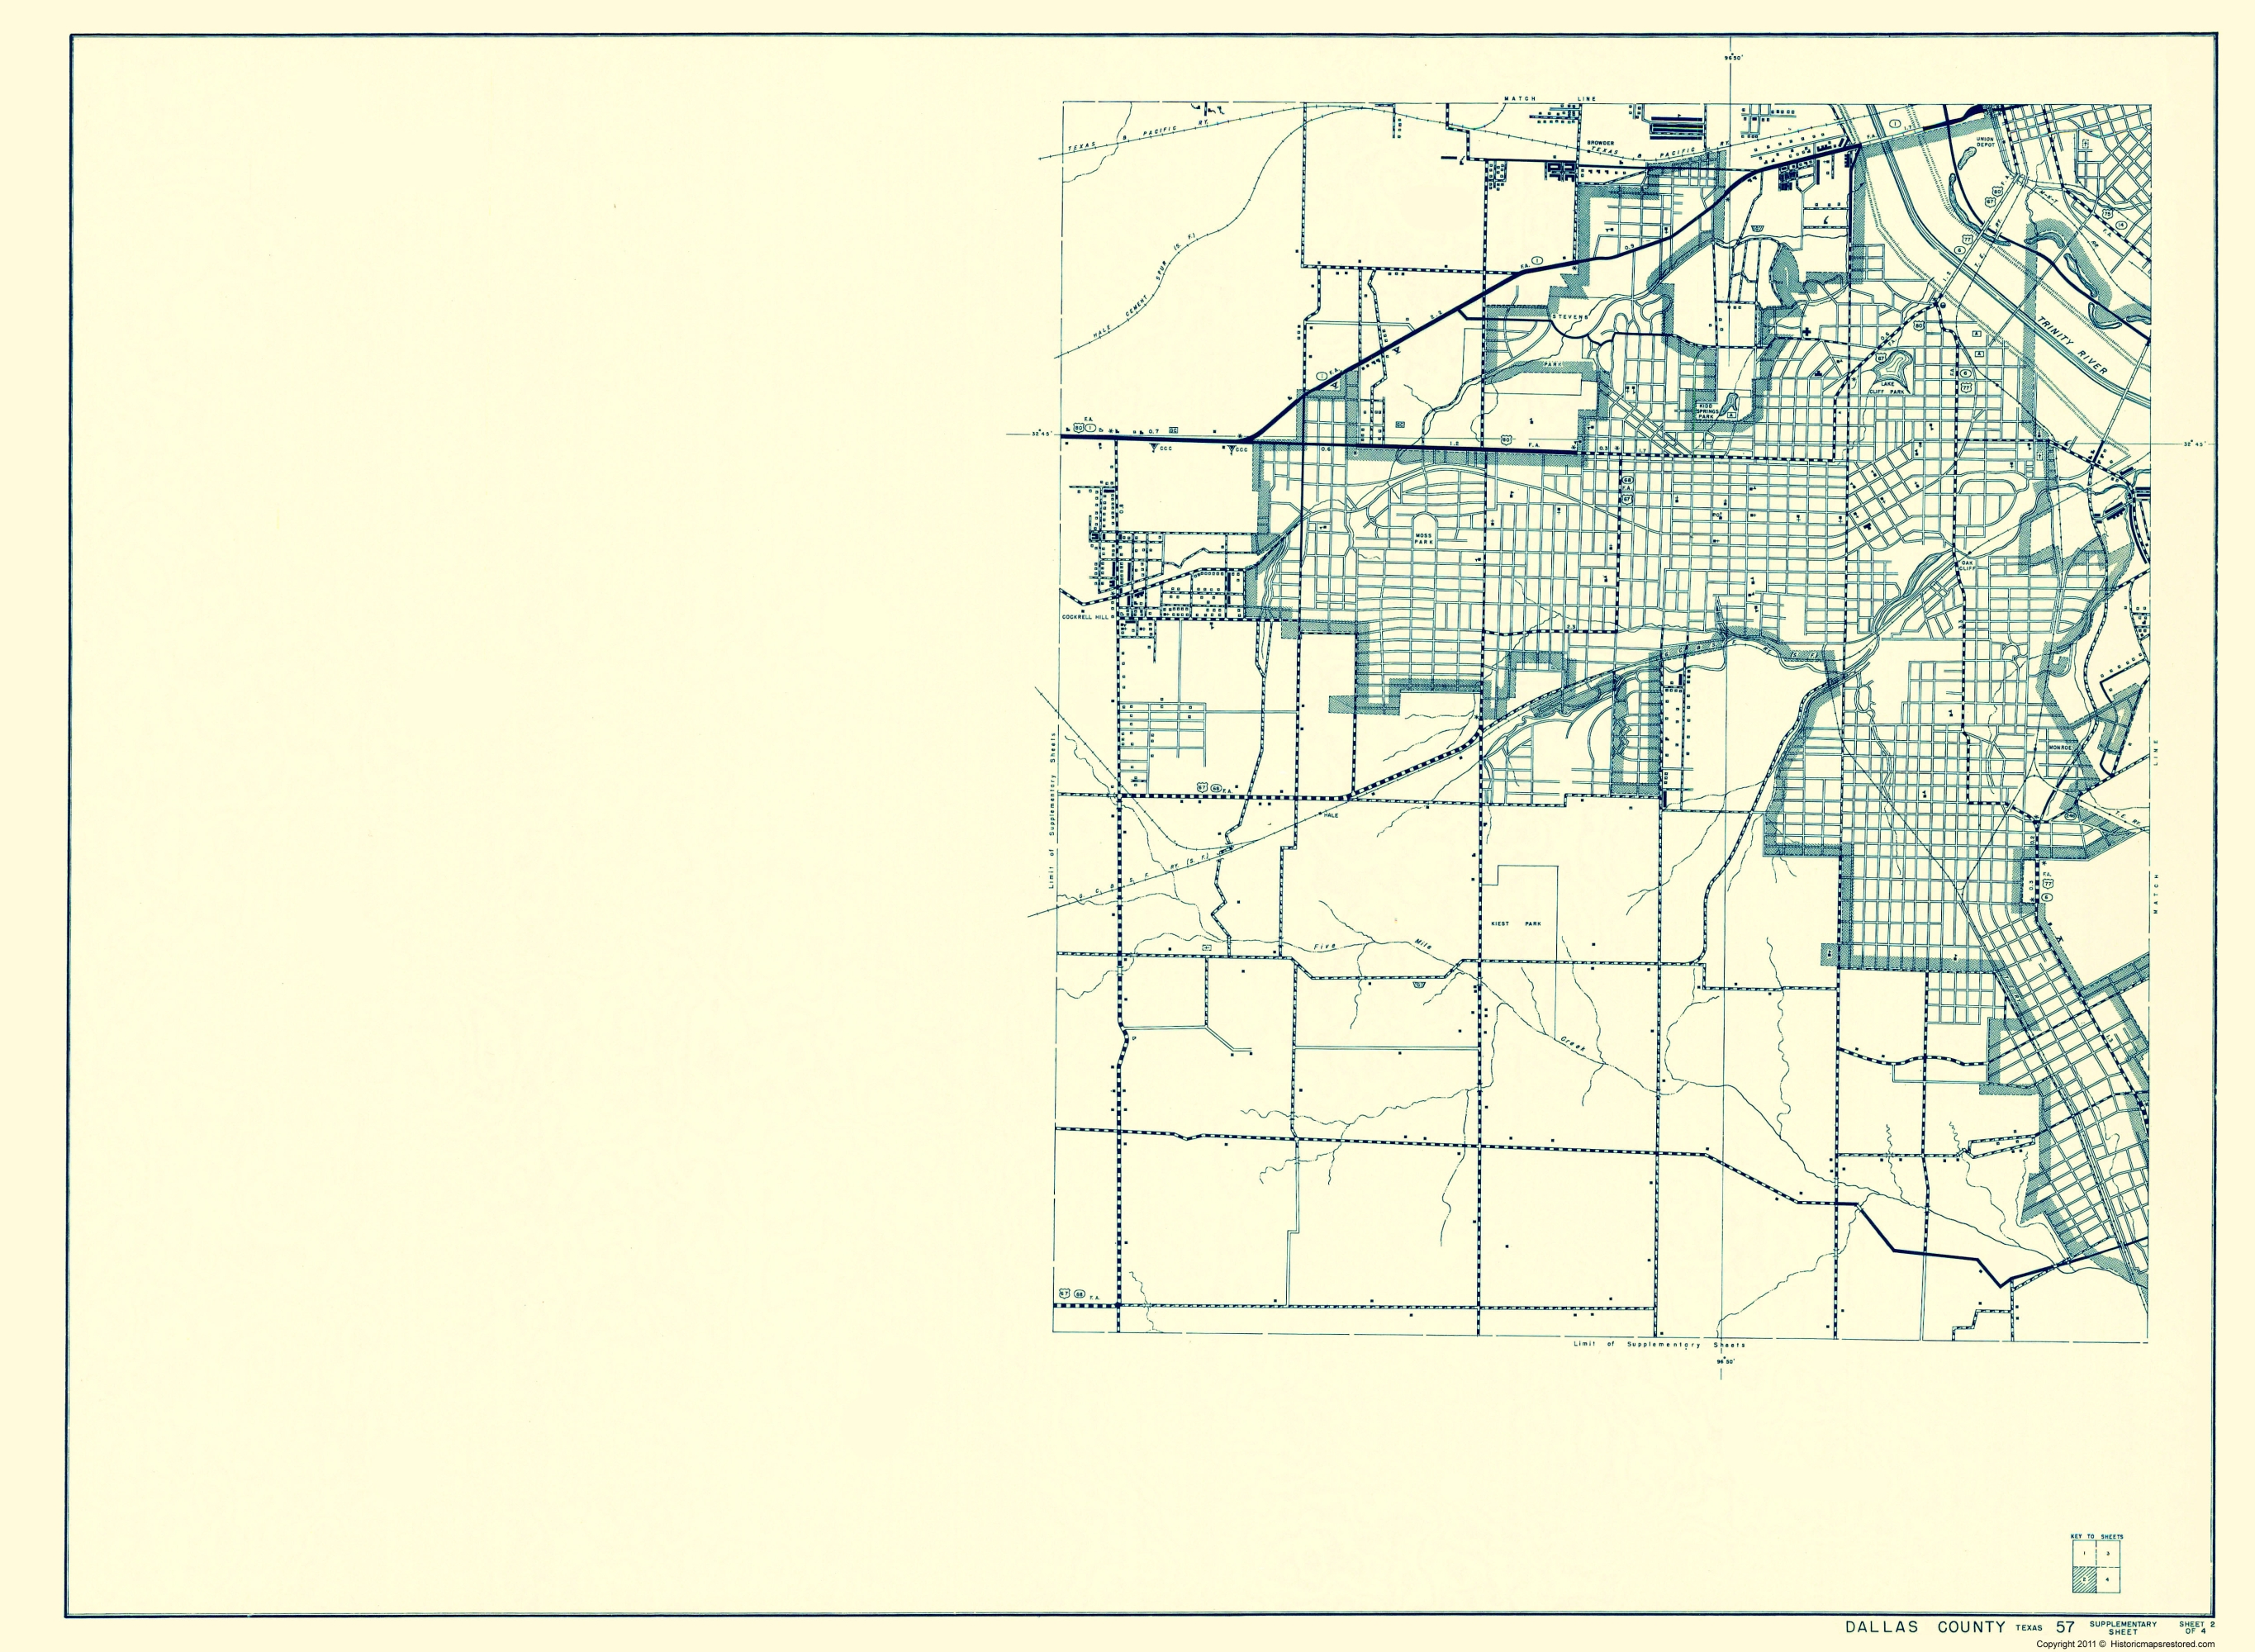 Old County Map - Dallas Texas Cities 2 of 4 - Highway Dept 1936 - 23 x 31.39